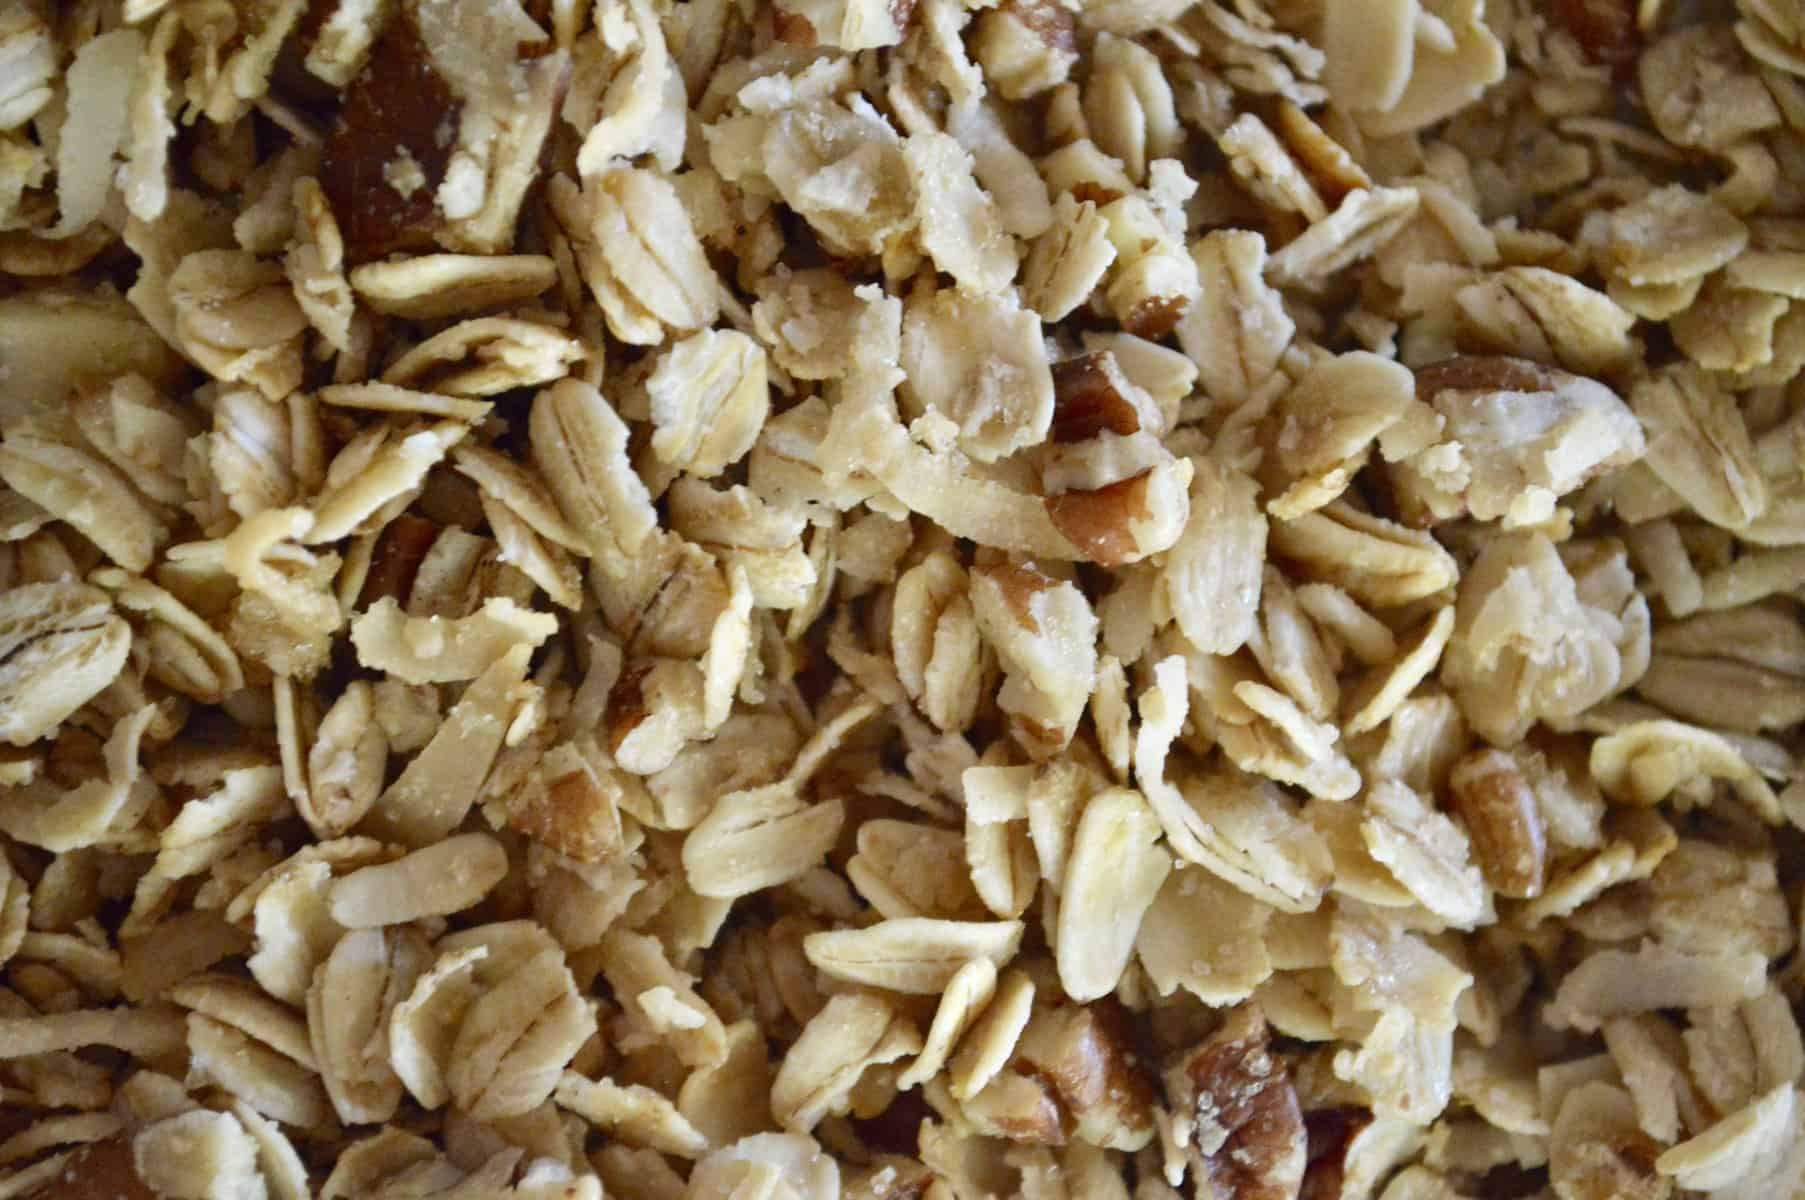 coconut pecan granola close up photo